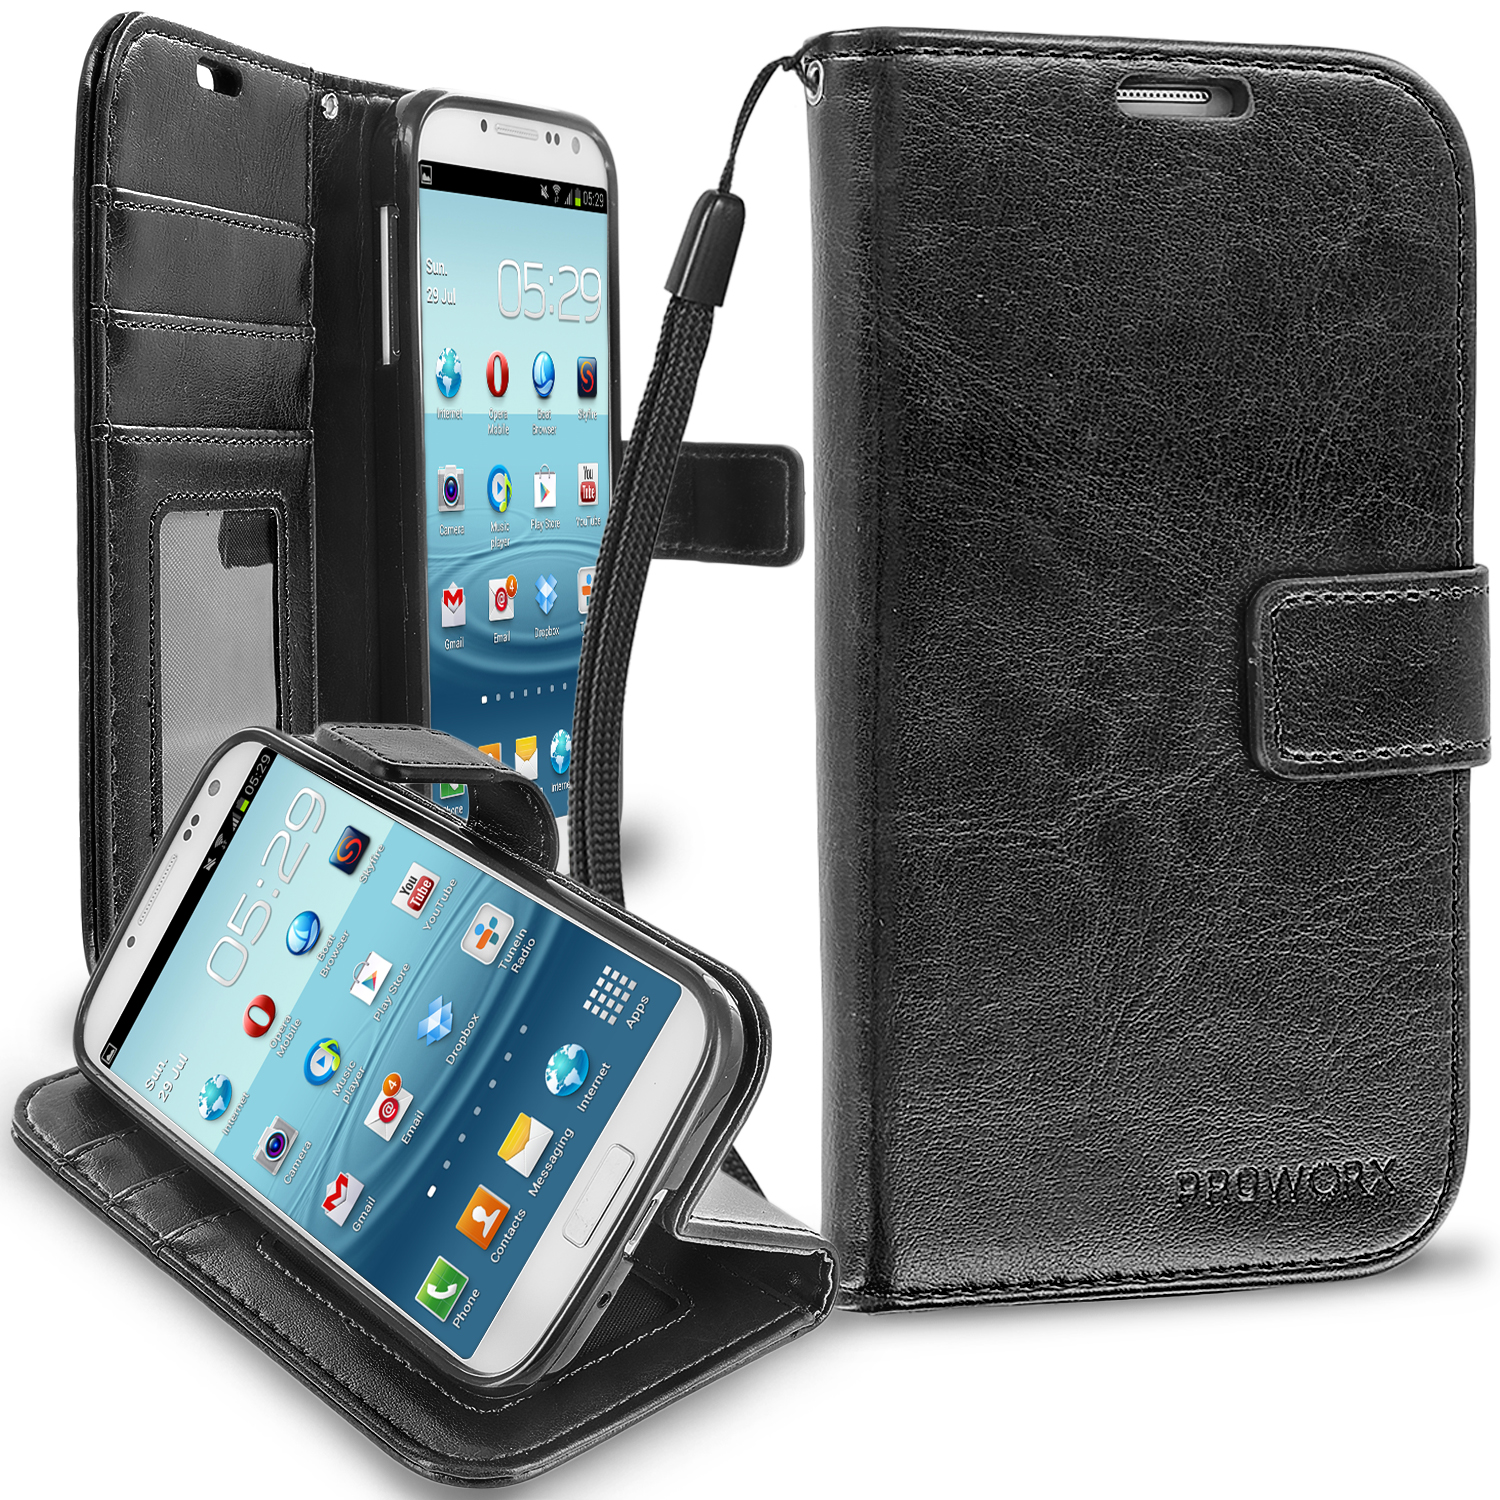 Samsung Galaxy S4 Black ProWorx Wallet Case Luxury PU Leather Case Cover With Card Slots & Stand